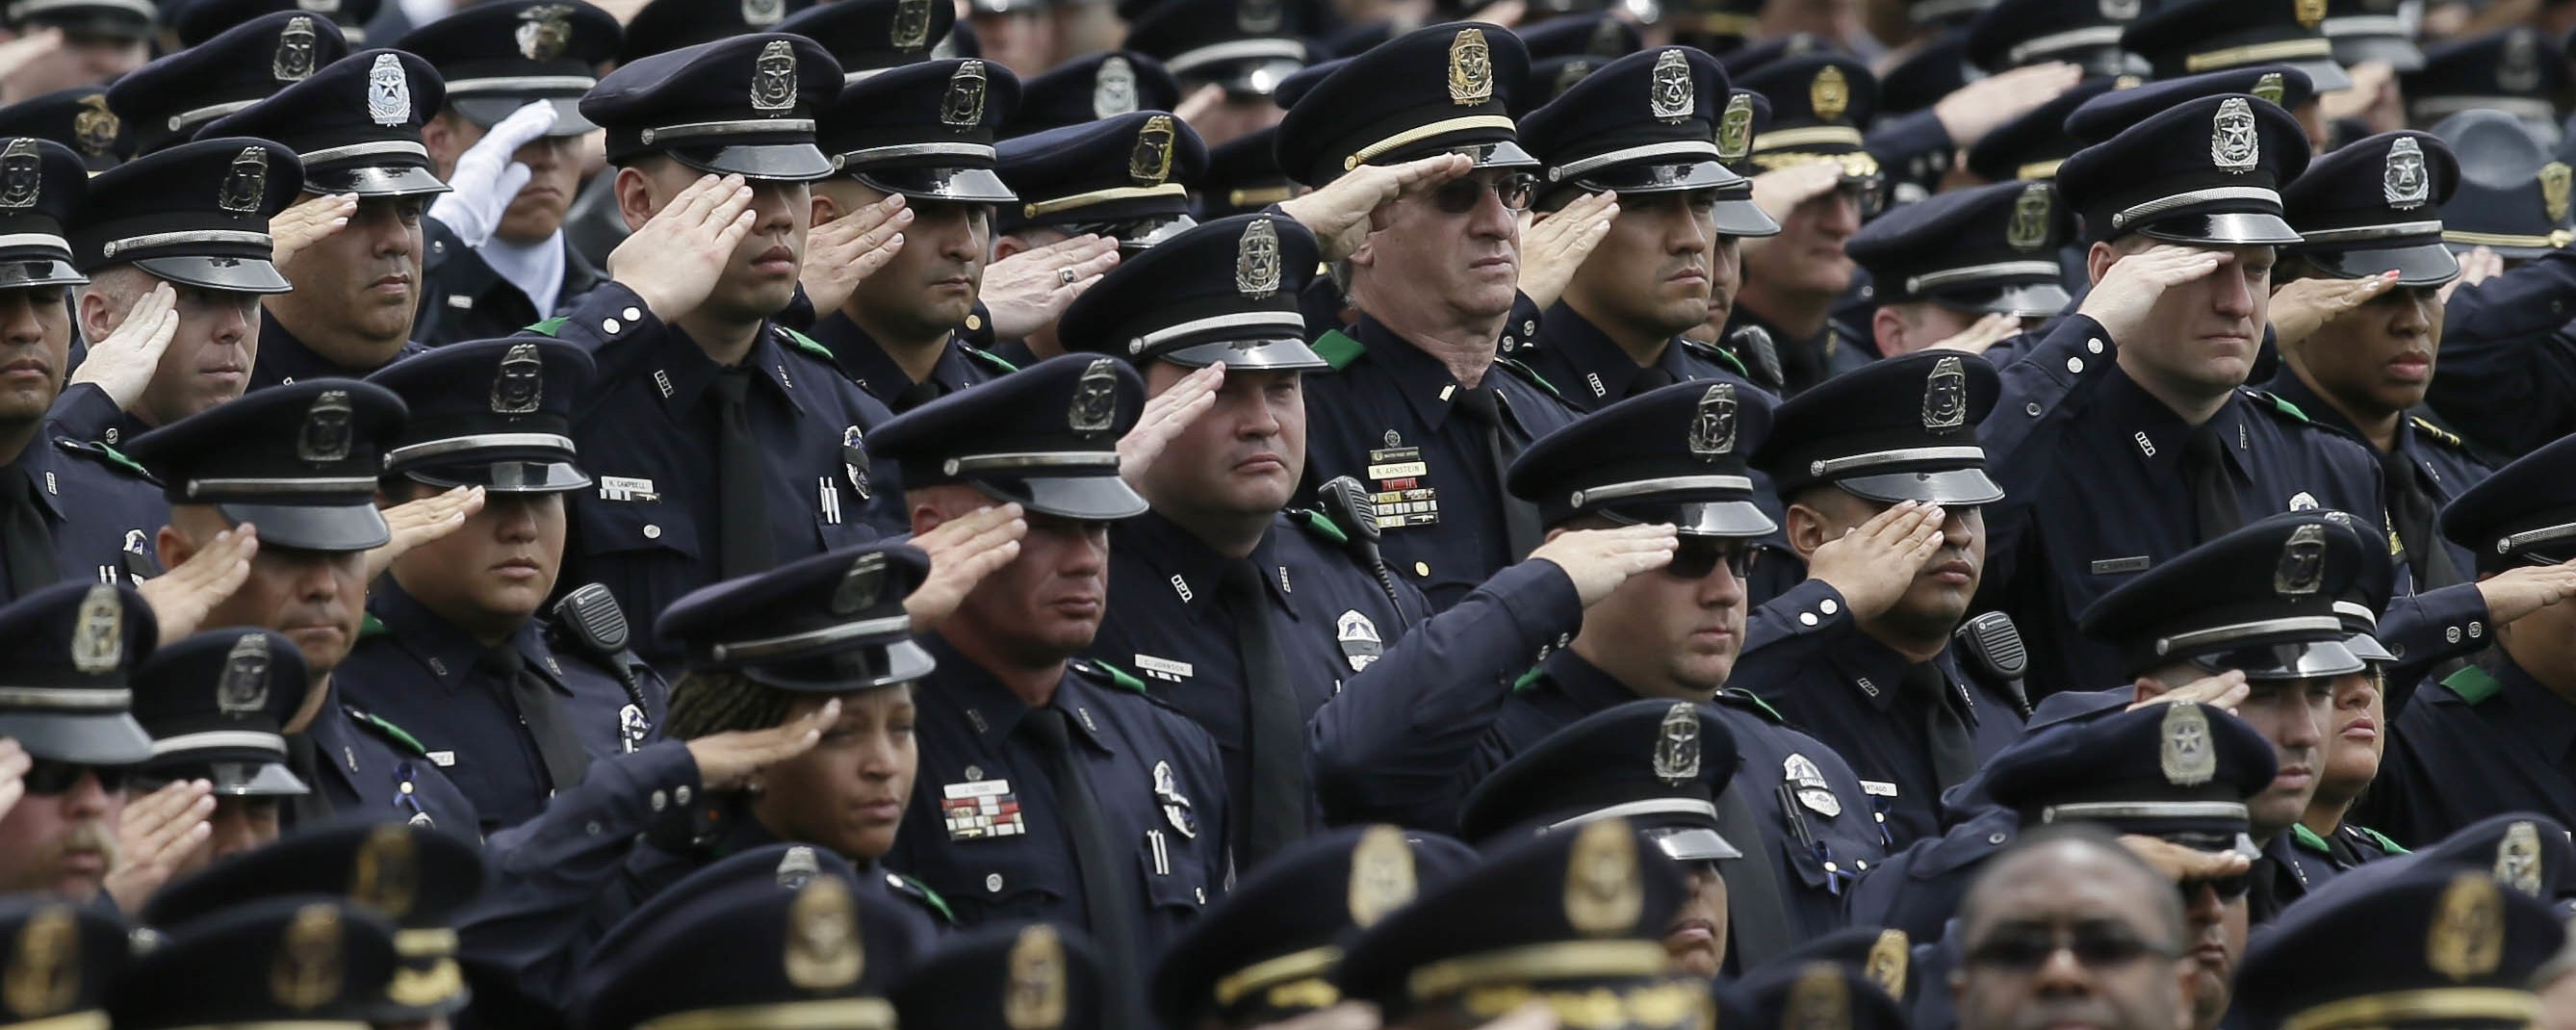 Police shootings are driving a surge in 'Blue Lives Matter' bills